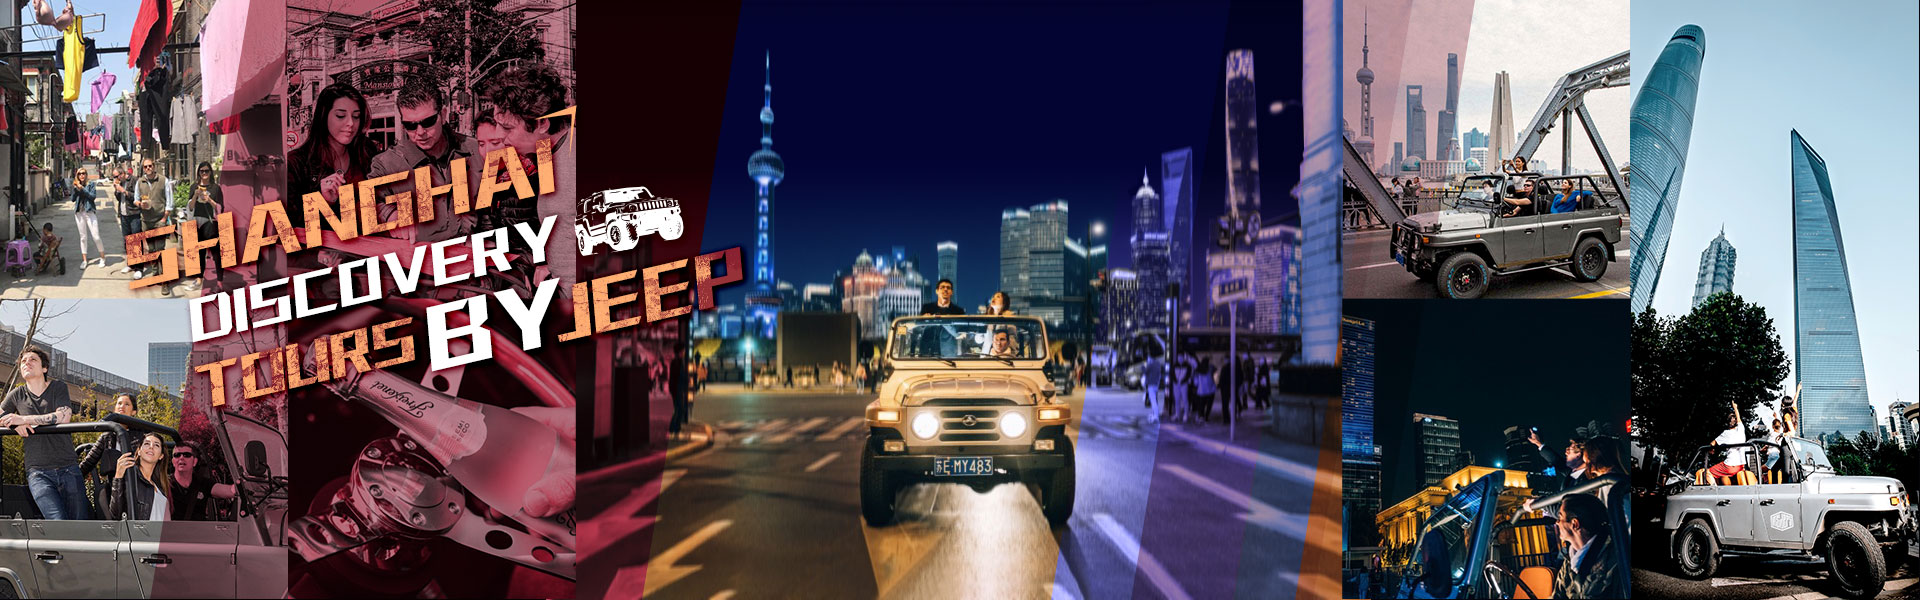 Shanghai Discovery Tours by Jeep